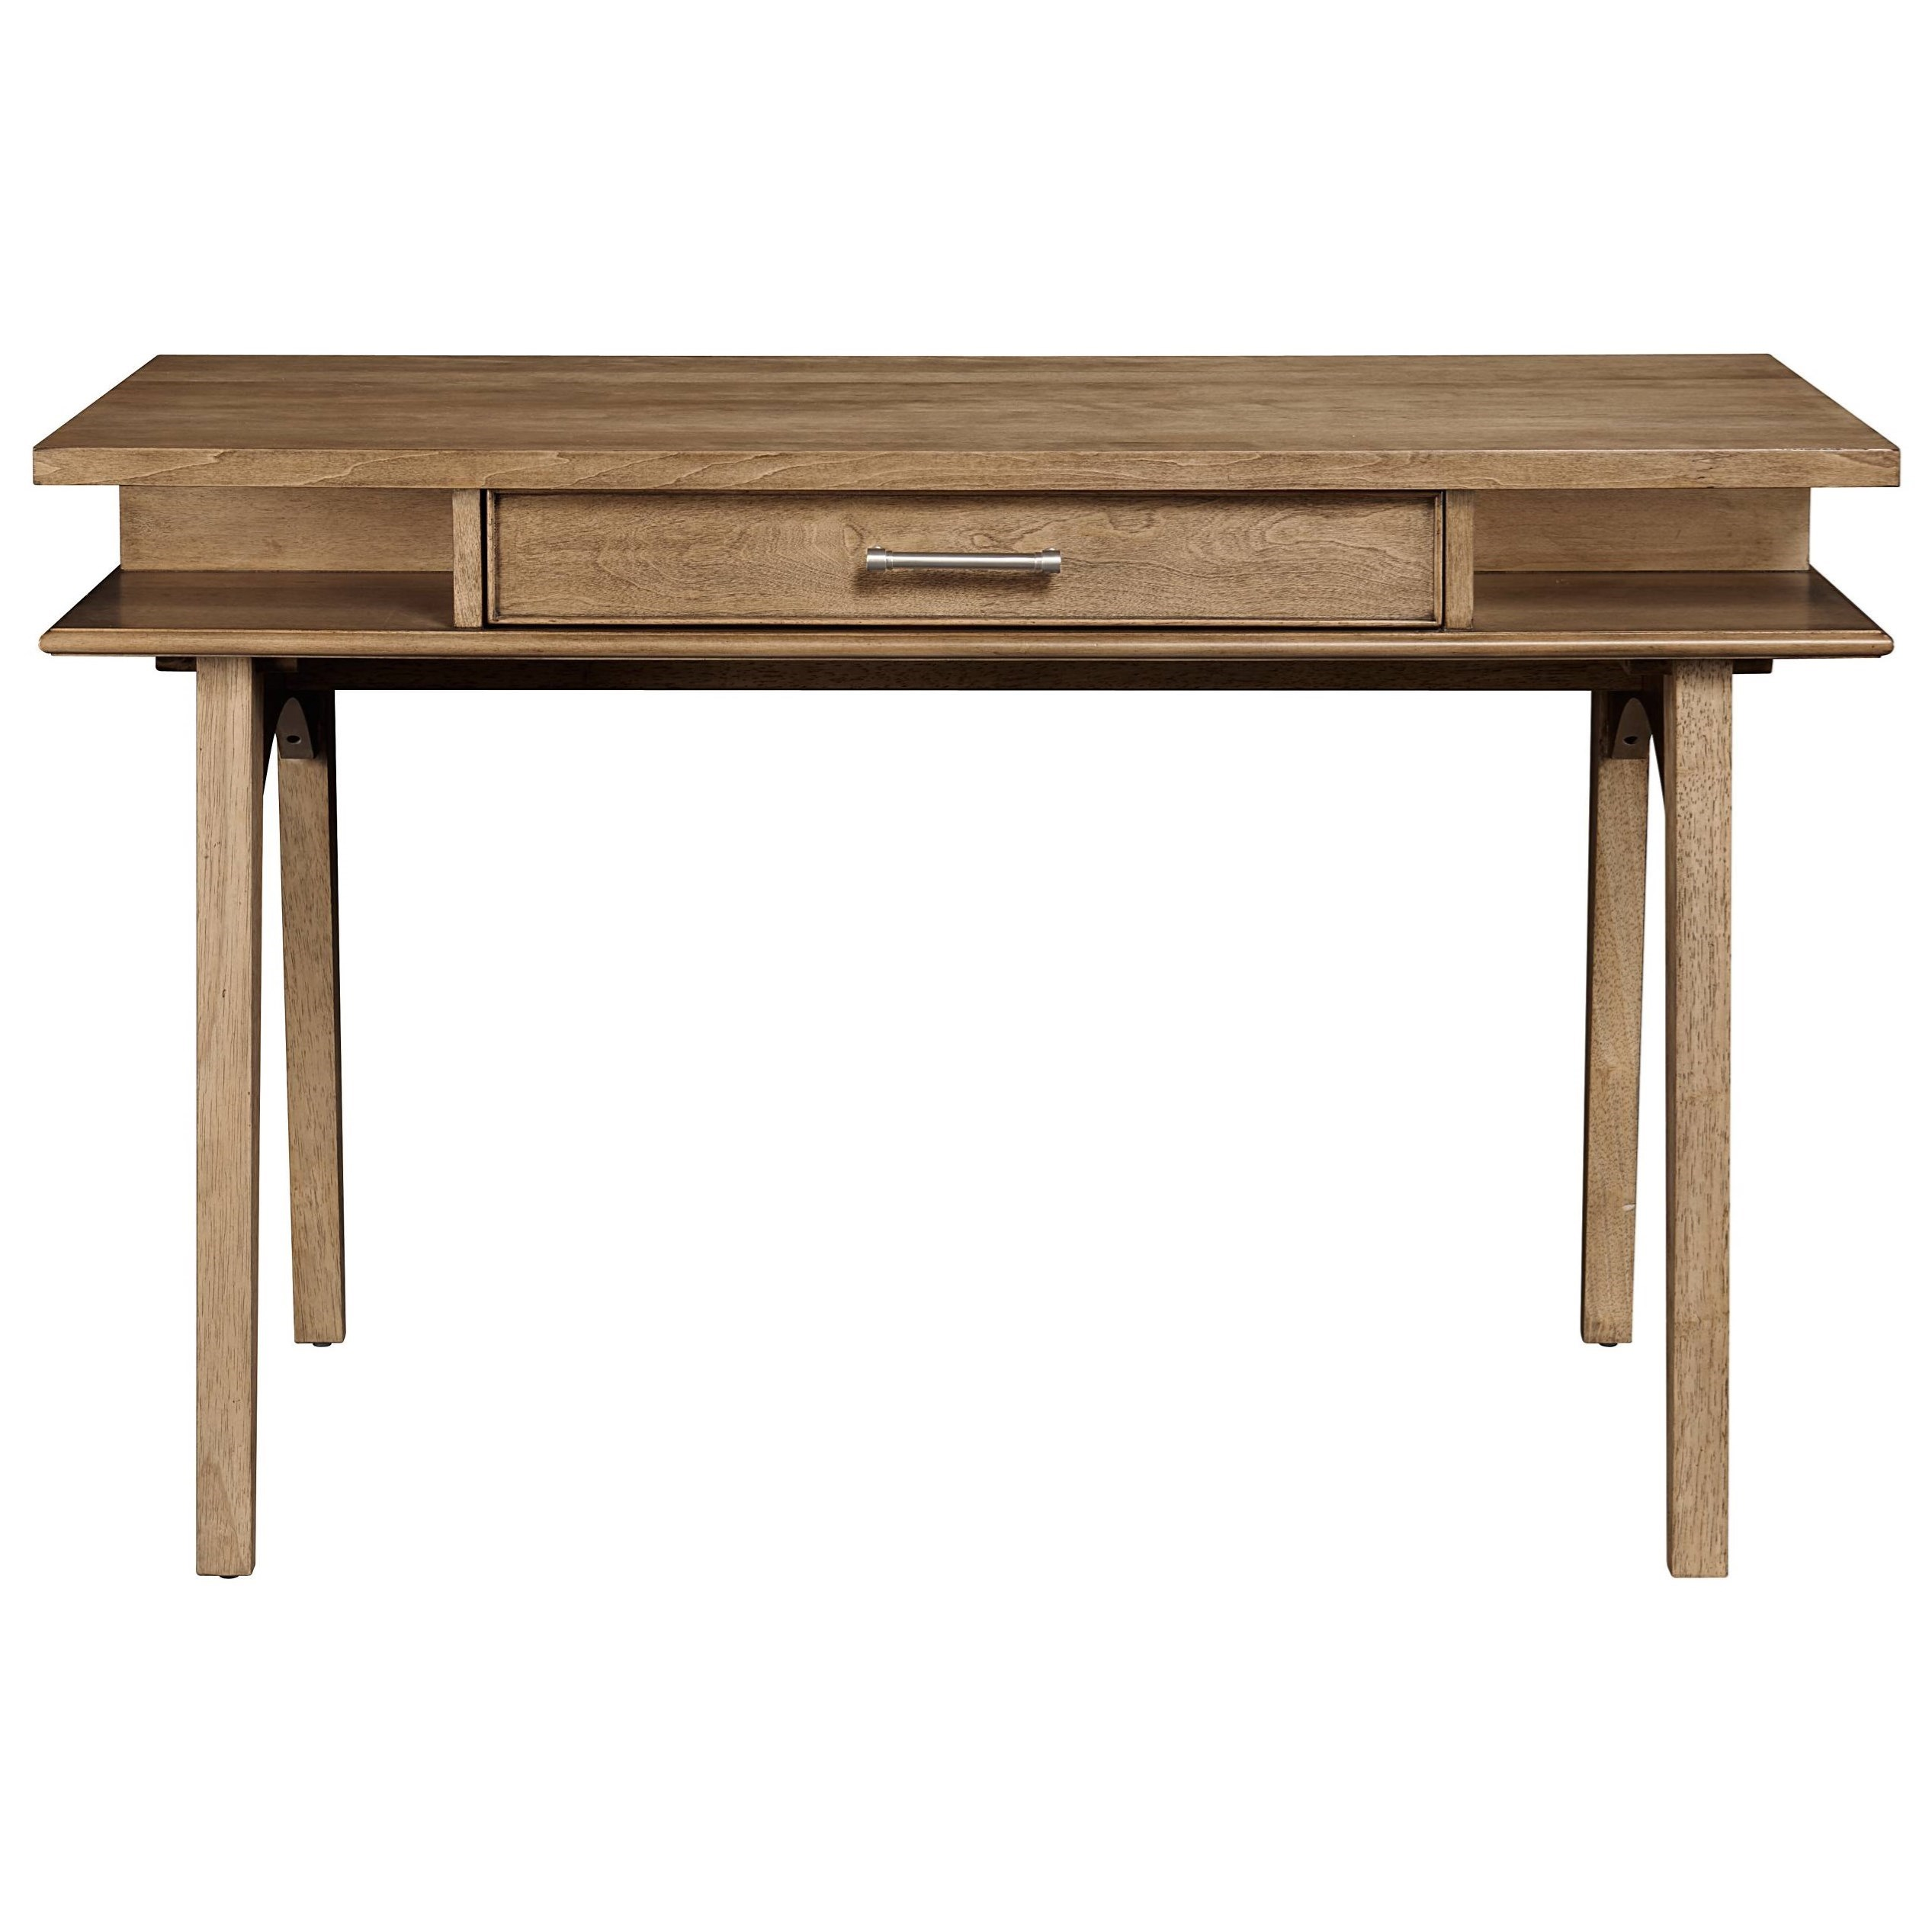 Stone & Leigh Furniture Chelsea Square Desk - Item Number: 584-63-27